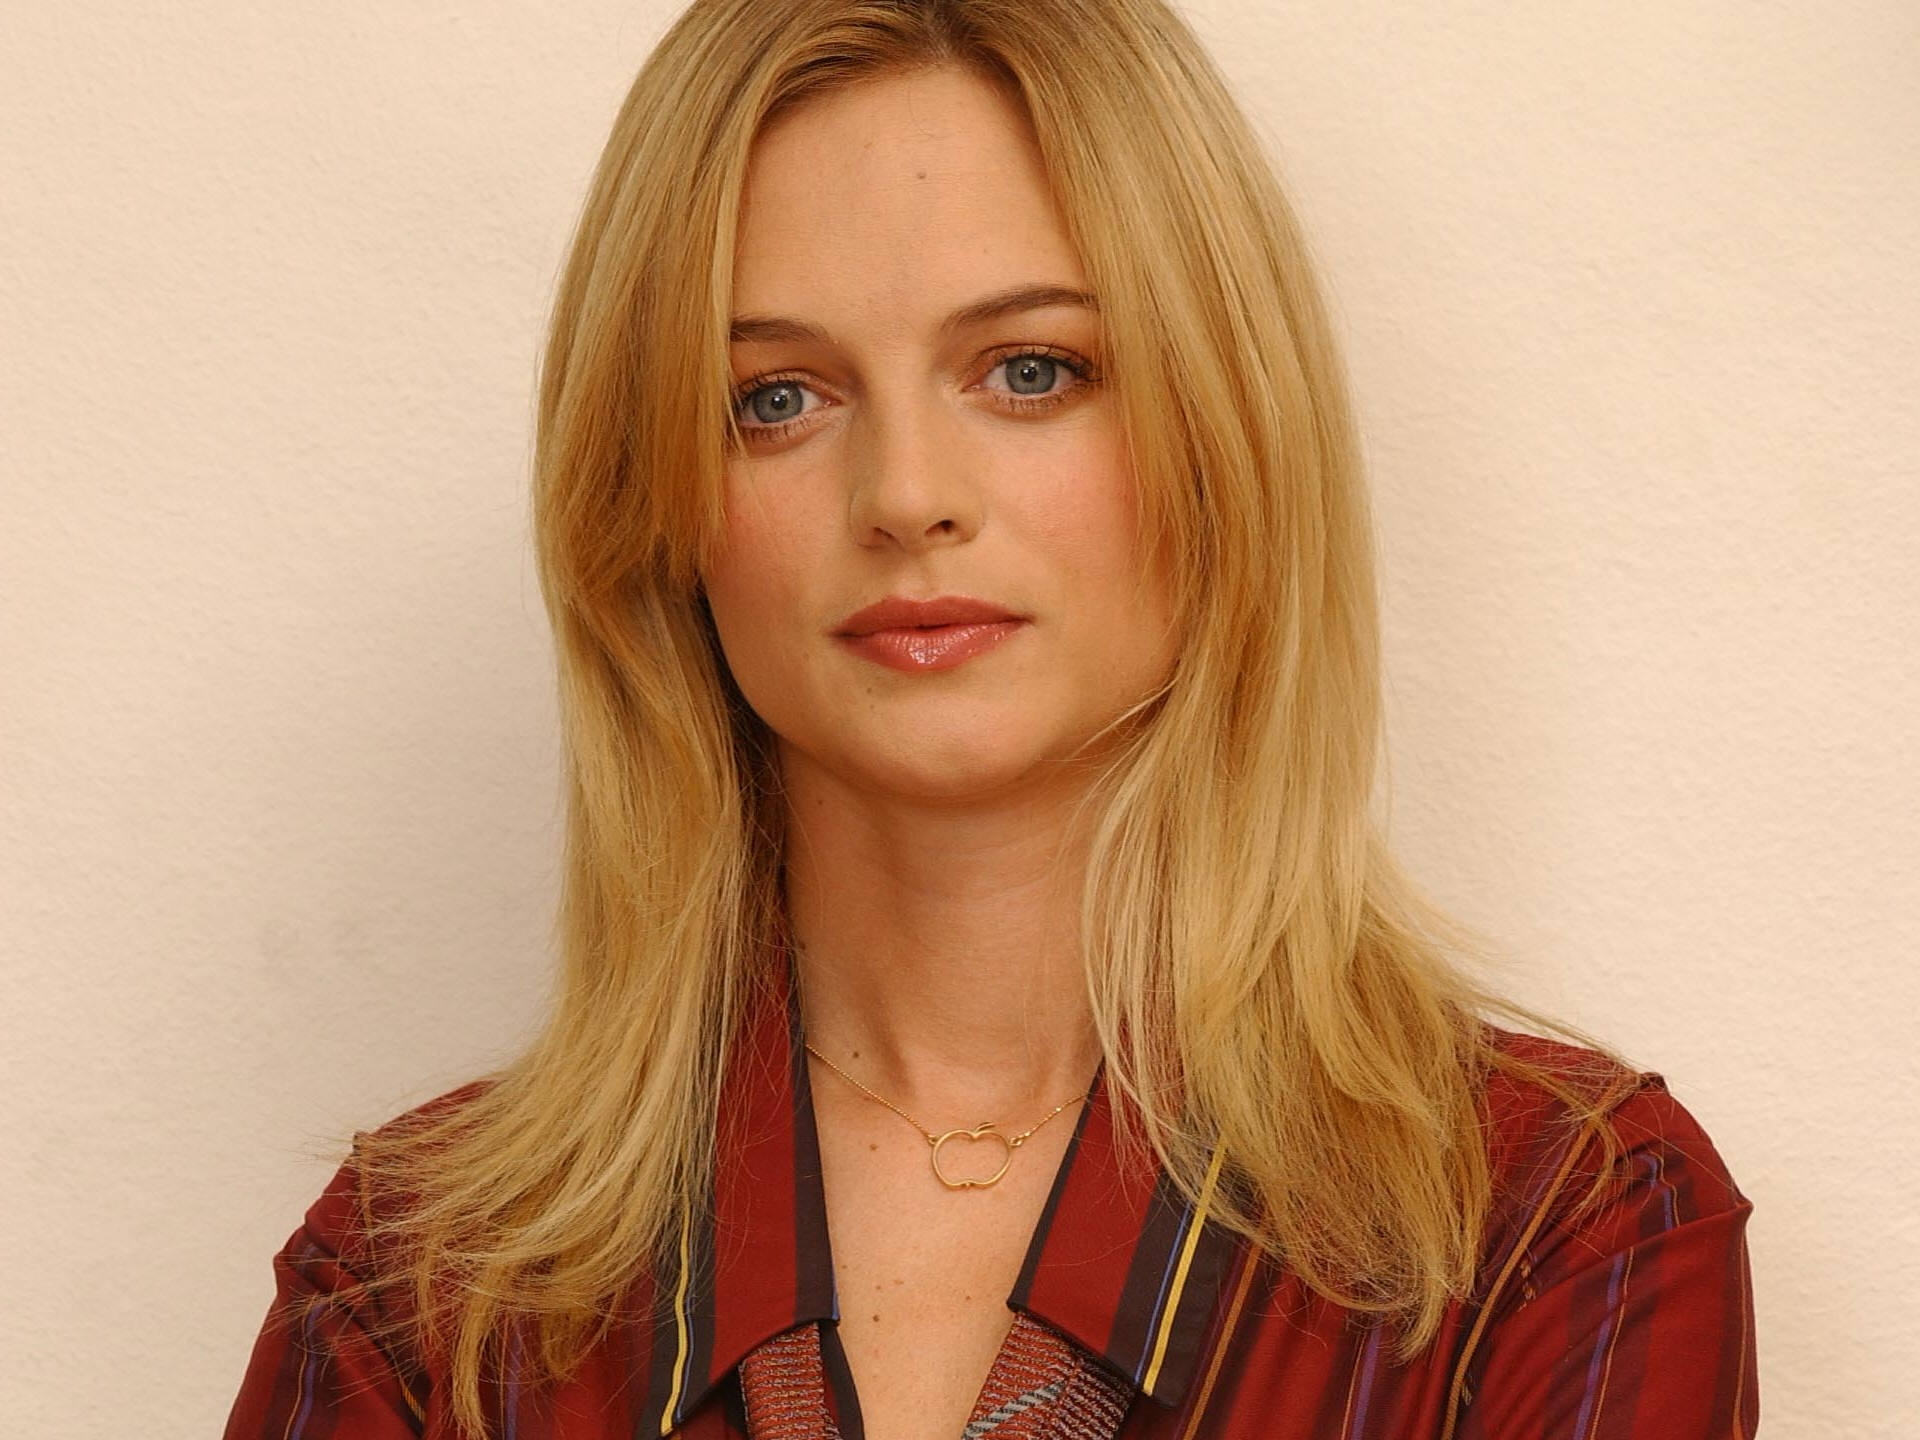 heather graham wallpapers images photos pictures backgrounds